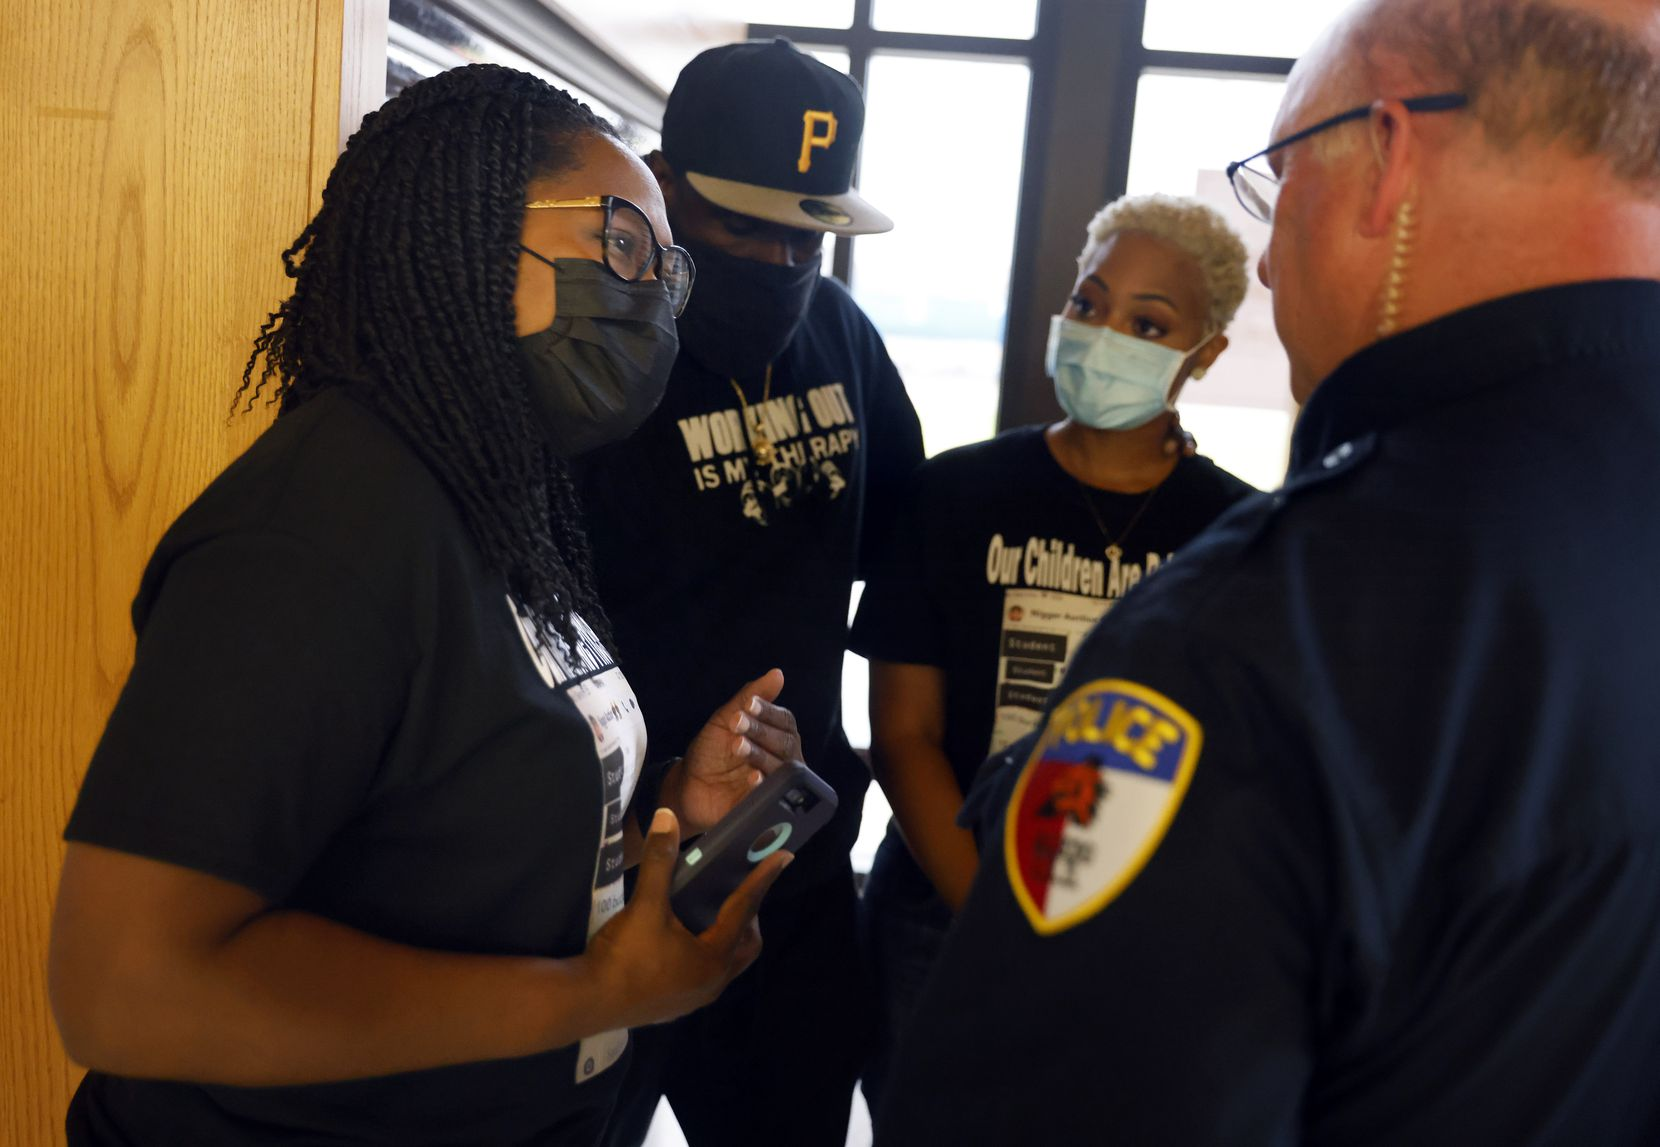 Mothers Tamara Lawrence (left) and Mioshi Johnson visited with Aledo ISD Police Chief Fred Collie after a Thursday night school board meeting in which they raised concerns about the district's reaction to a racist bullying incident that targeted their sons.